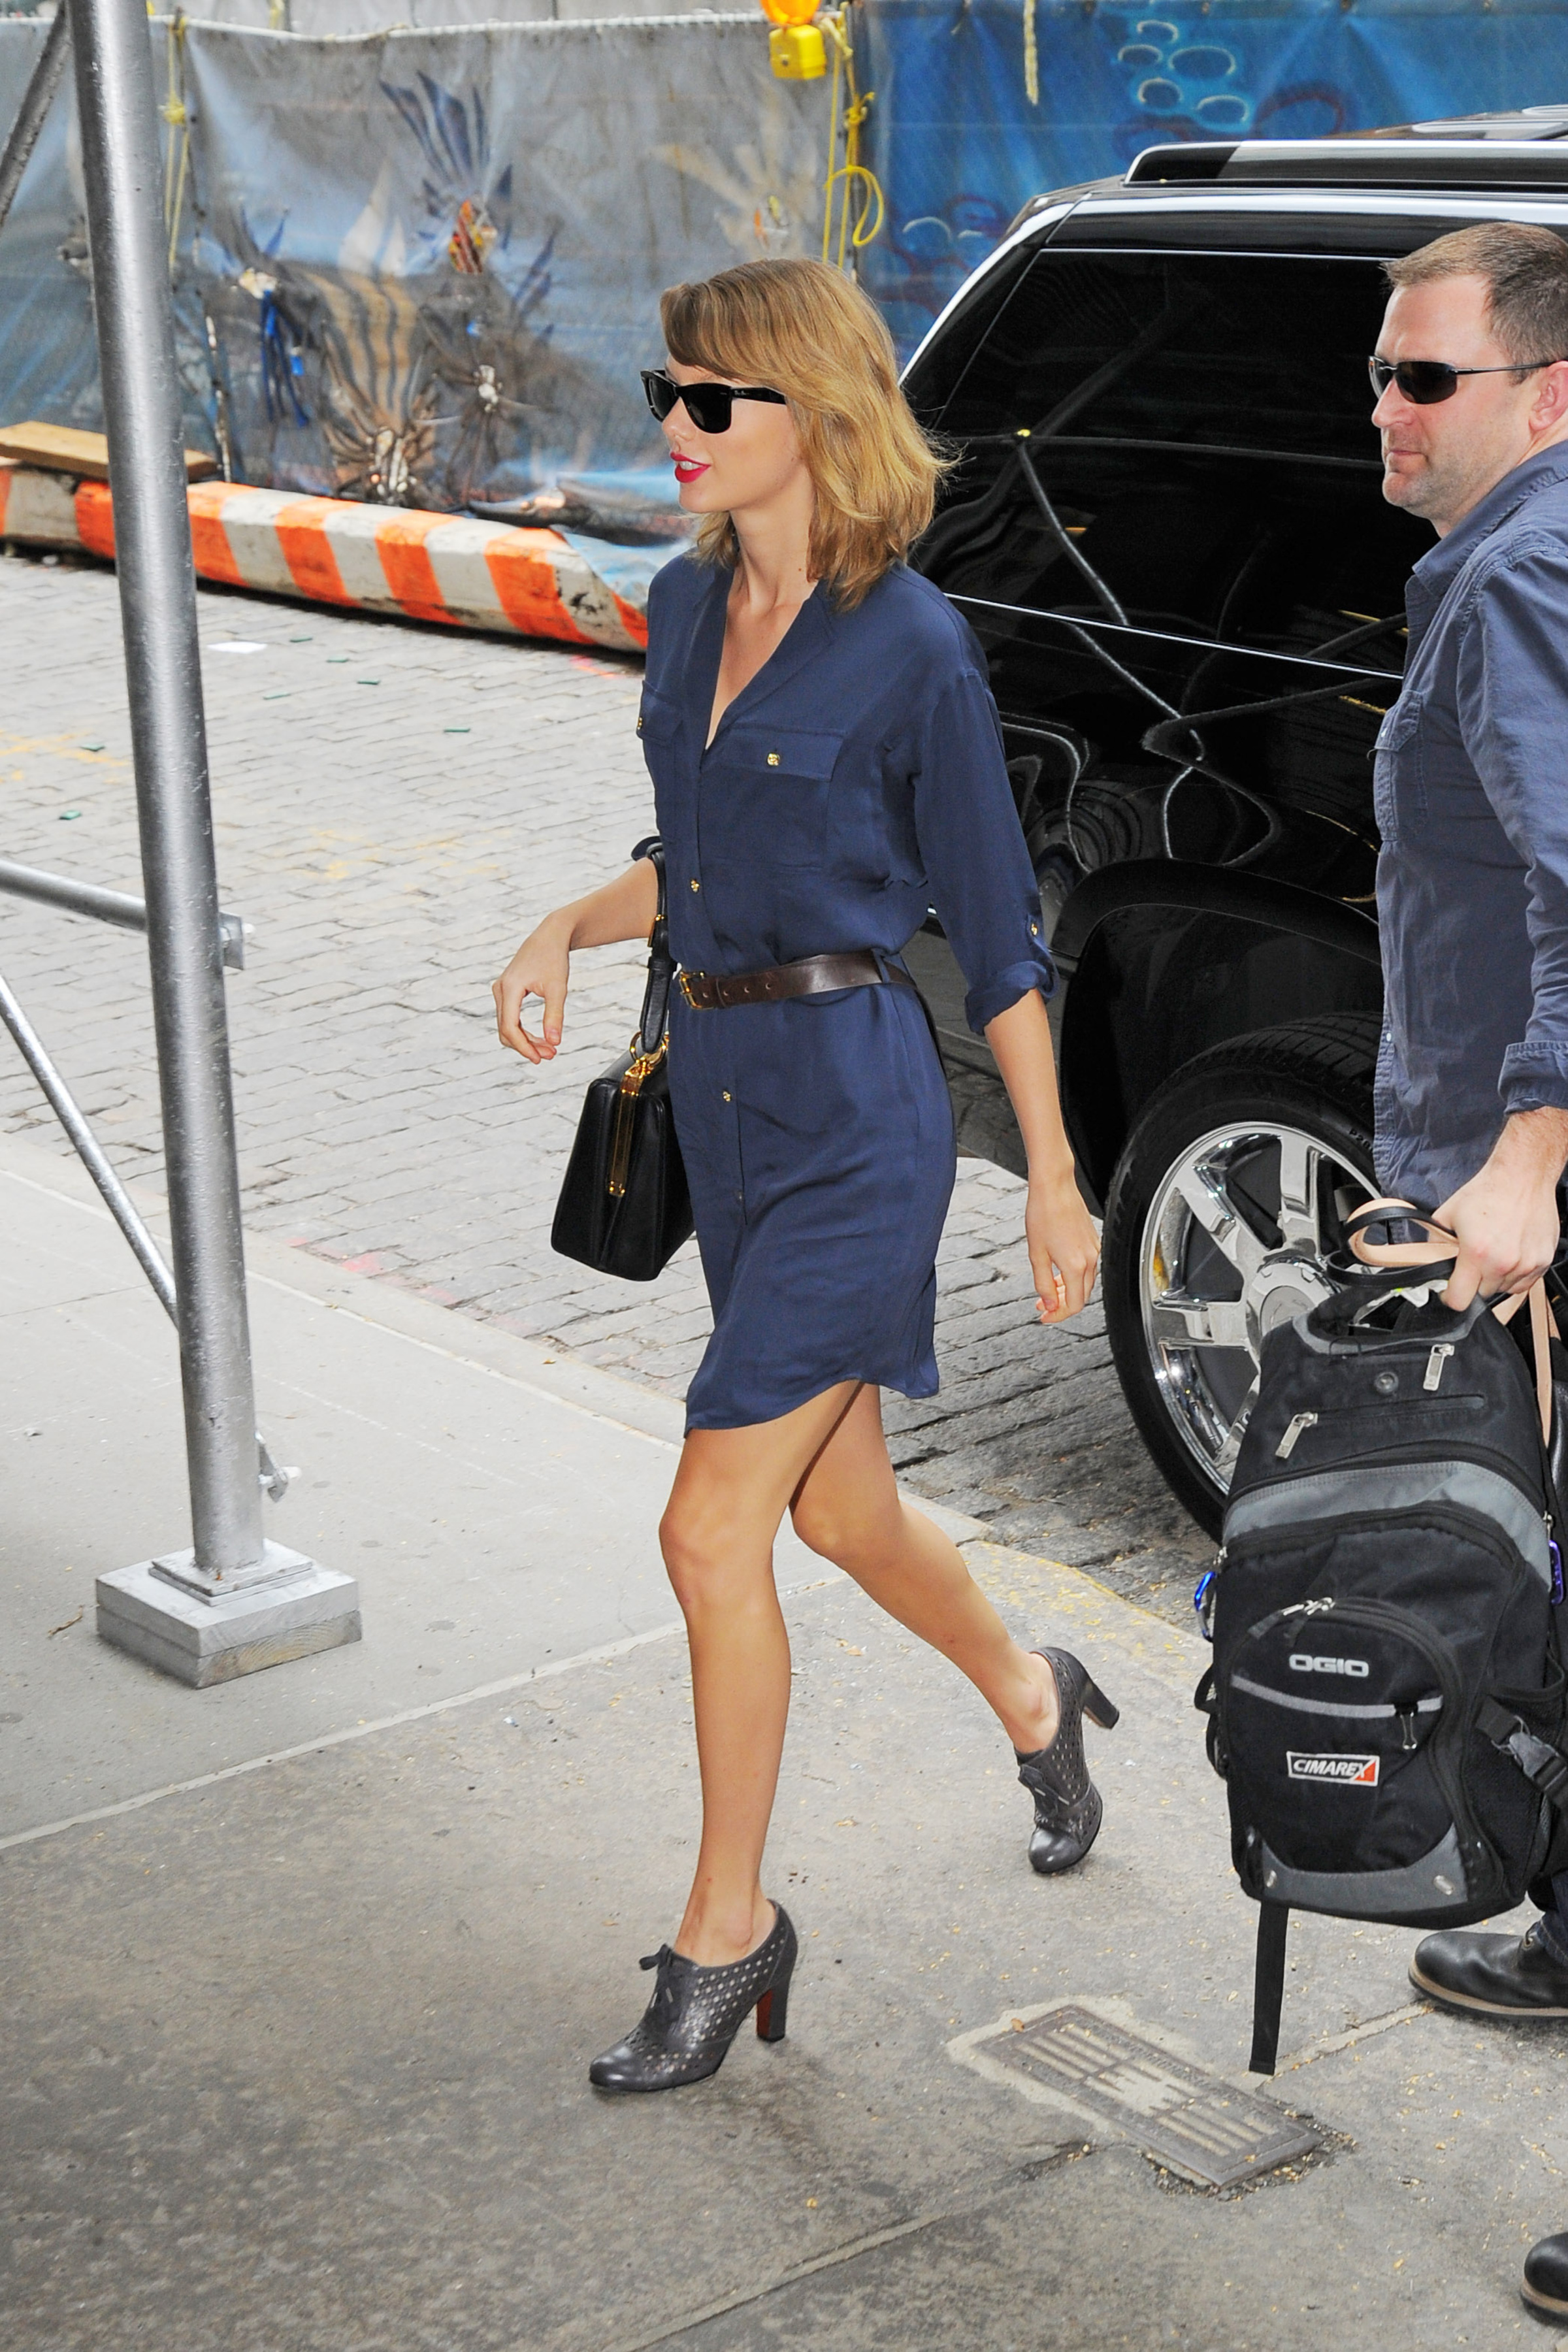 Taylor Swift Dresses Up For Gym Date With Karlie Kloss In NYC — Check Out  All The Pics! – TeenInfoNet a08ef00de799e